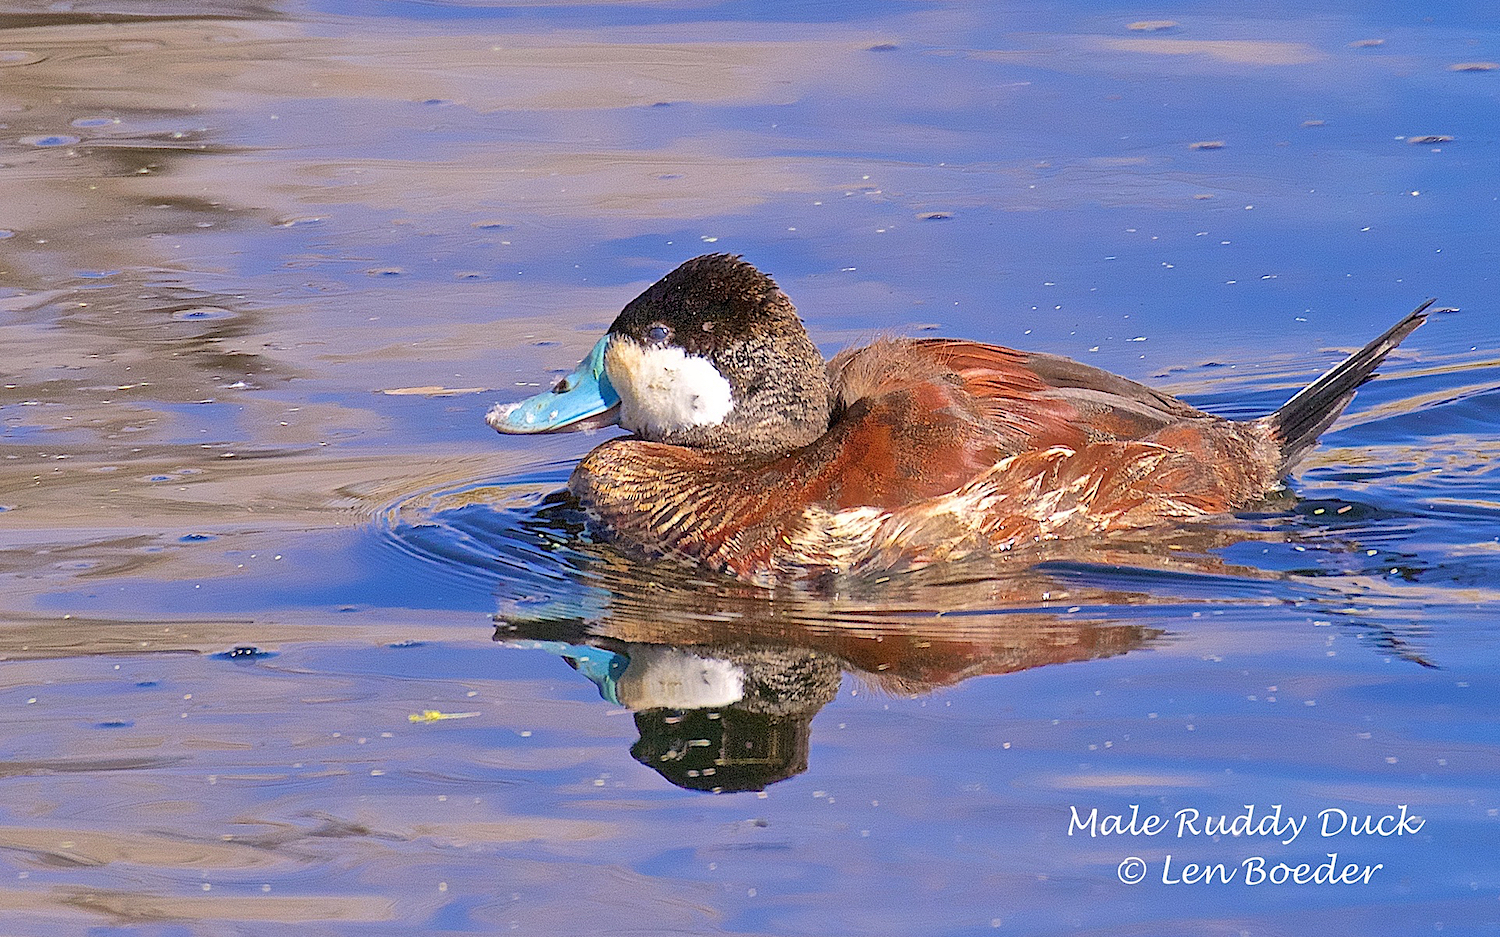 """Len notes, """"The male Ruby Duck's bill turns blue during the mating season. Iasked him to pose for my picture, forgetting that he had just beenpreening before the shot. Notethe feathers on his blue bill. I will try to clean him up better before I take his picture next time.!"""